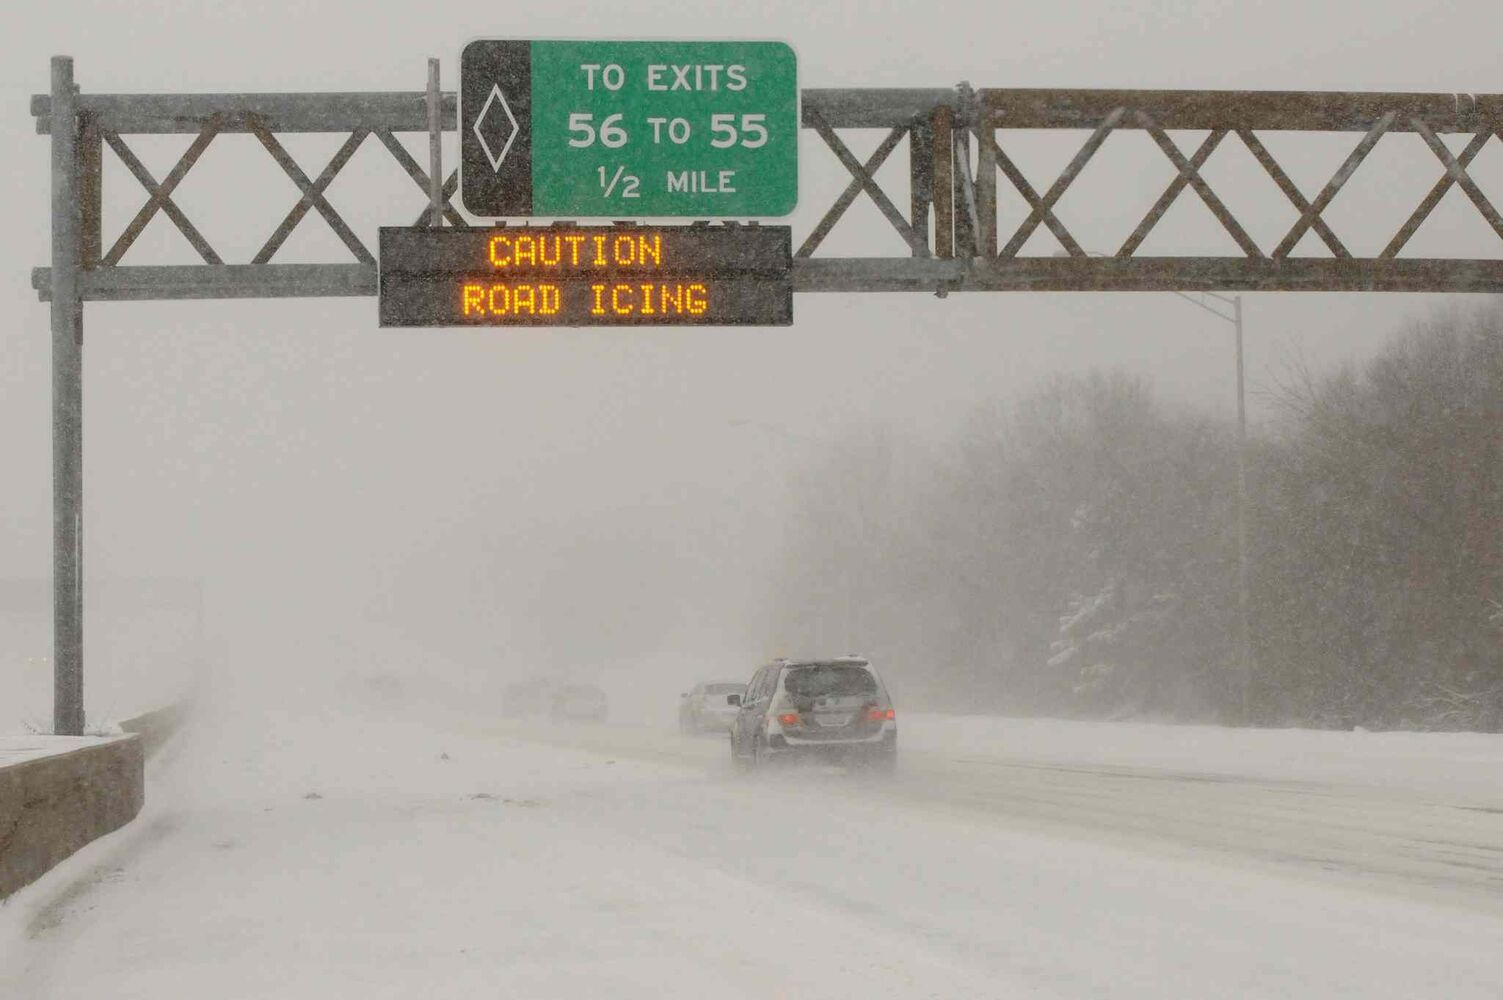 Treacherous whiteout conditions along the westbound Long Island Expressway in Hauppauge, N.Y., on Friday.  (James Carbone / Tribune Media MCT)